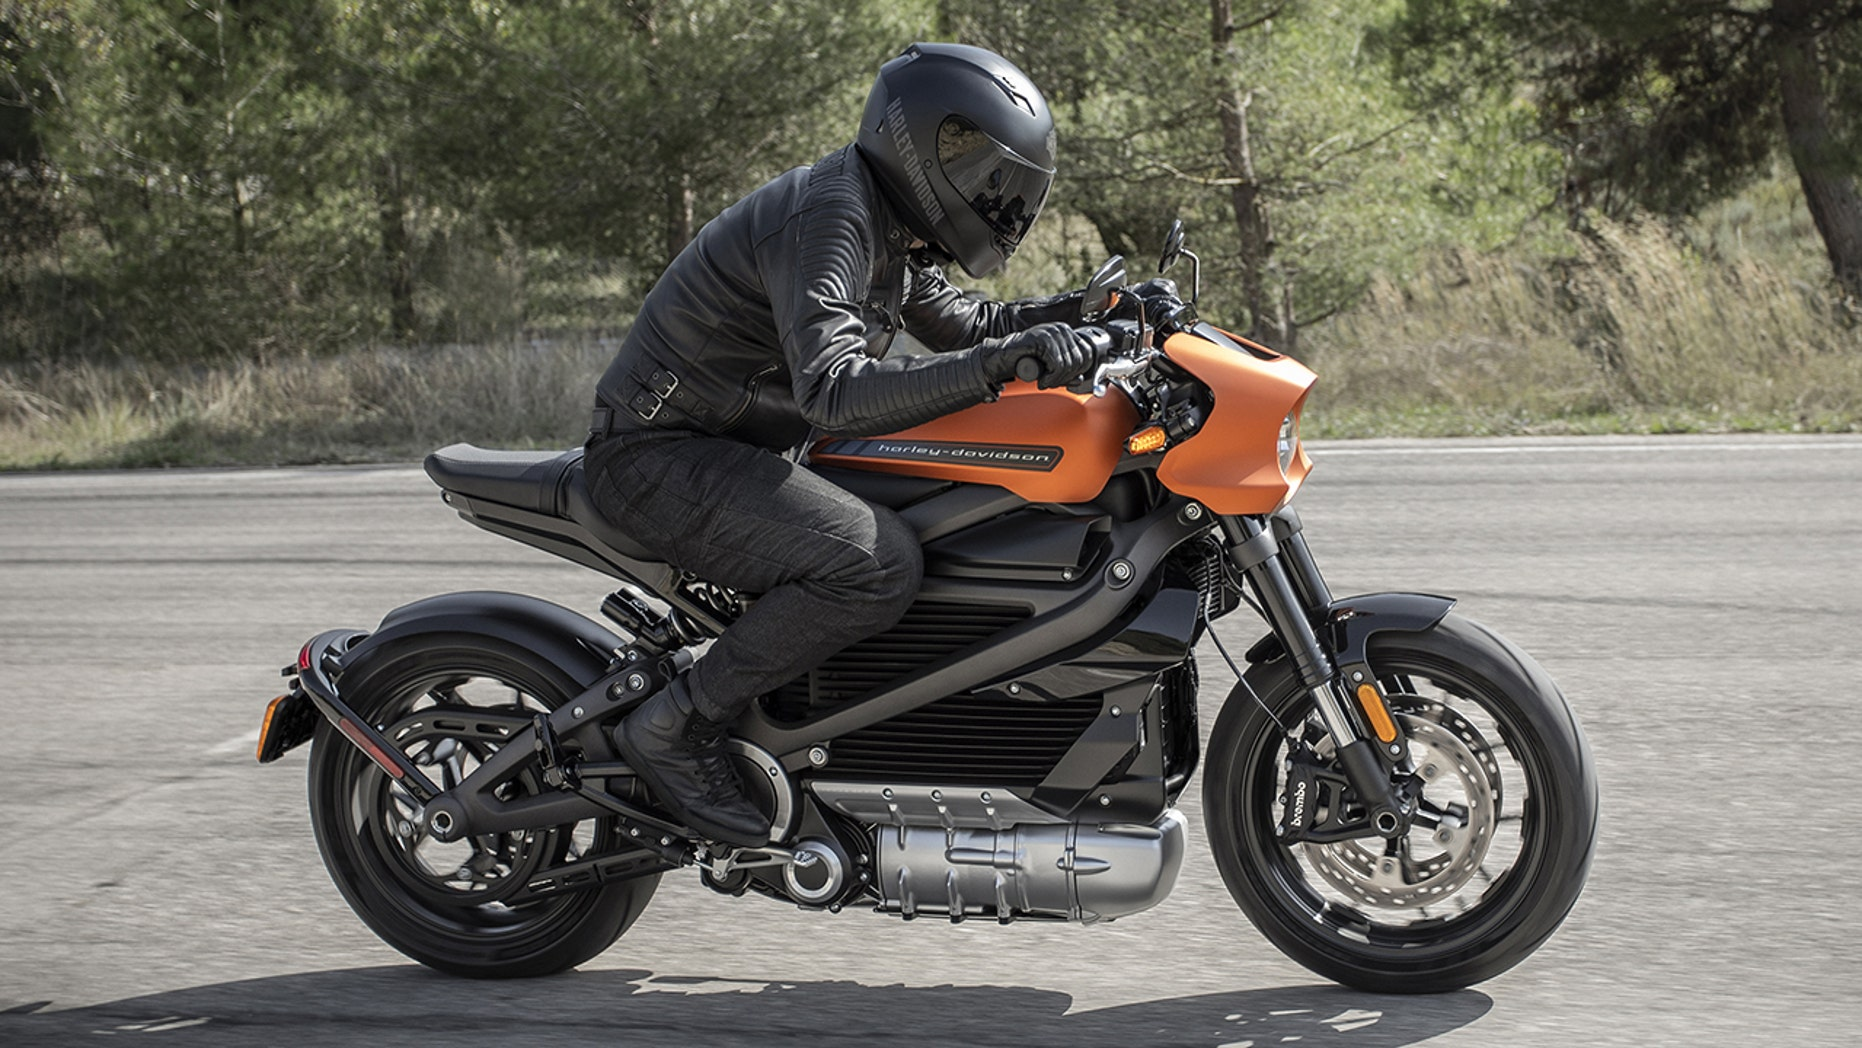 Harley Davidson Livewire Electric Bike Performs Better Than Expected